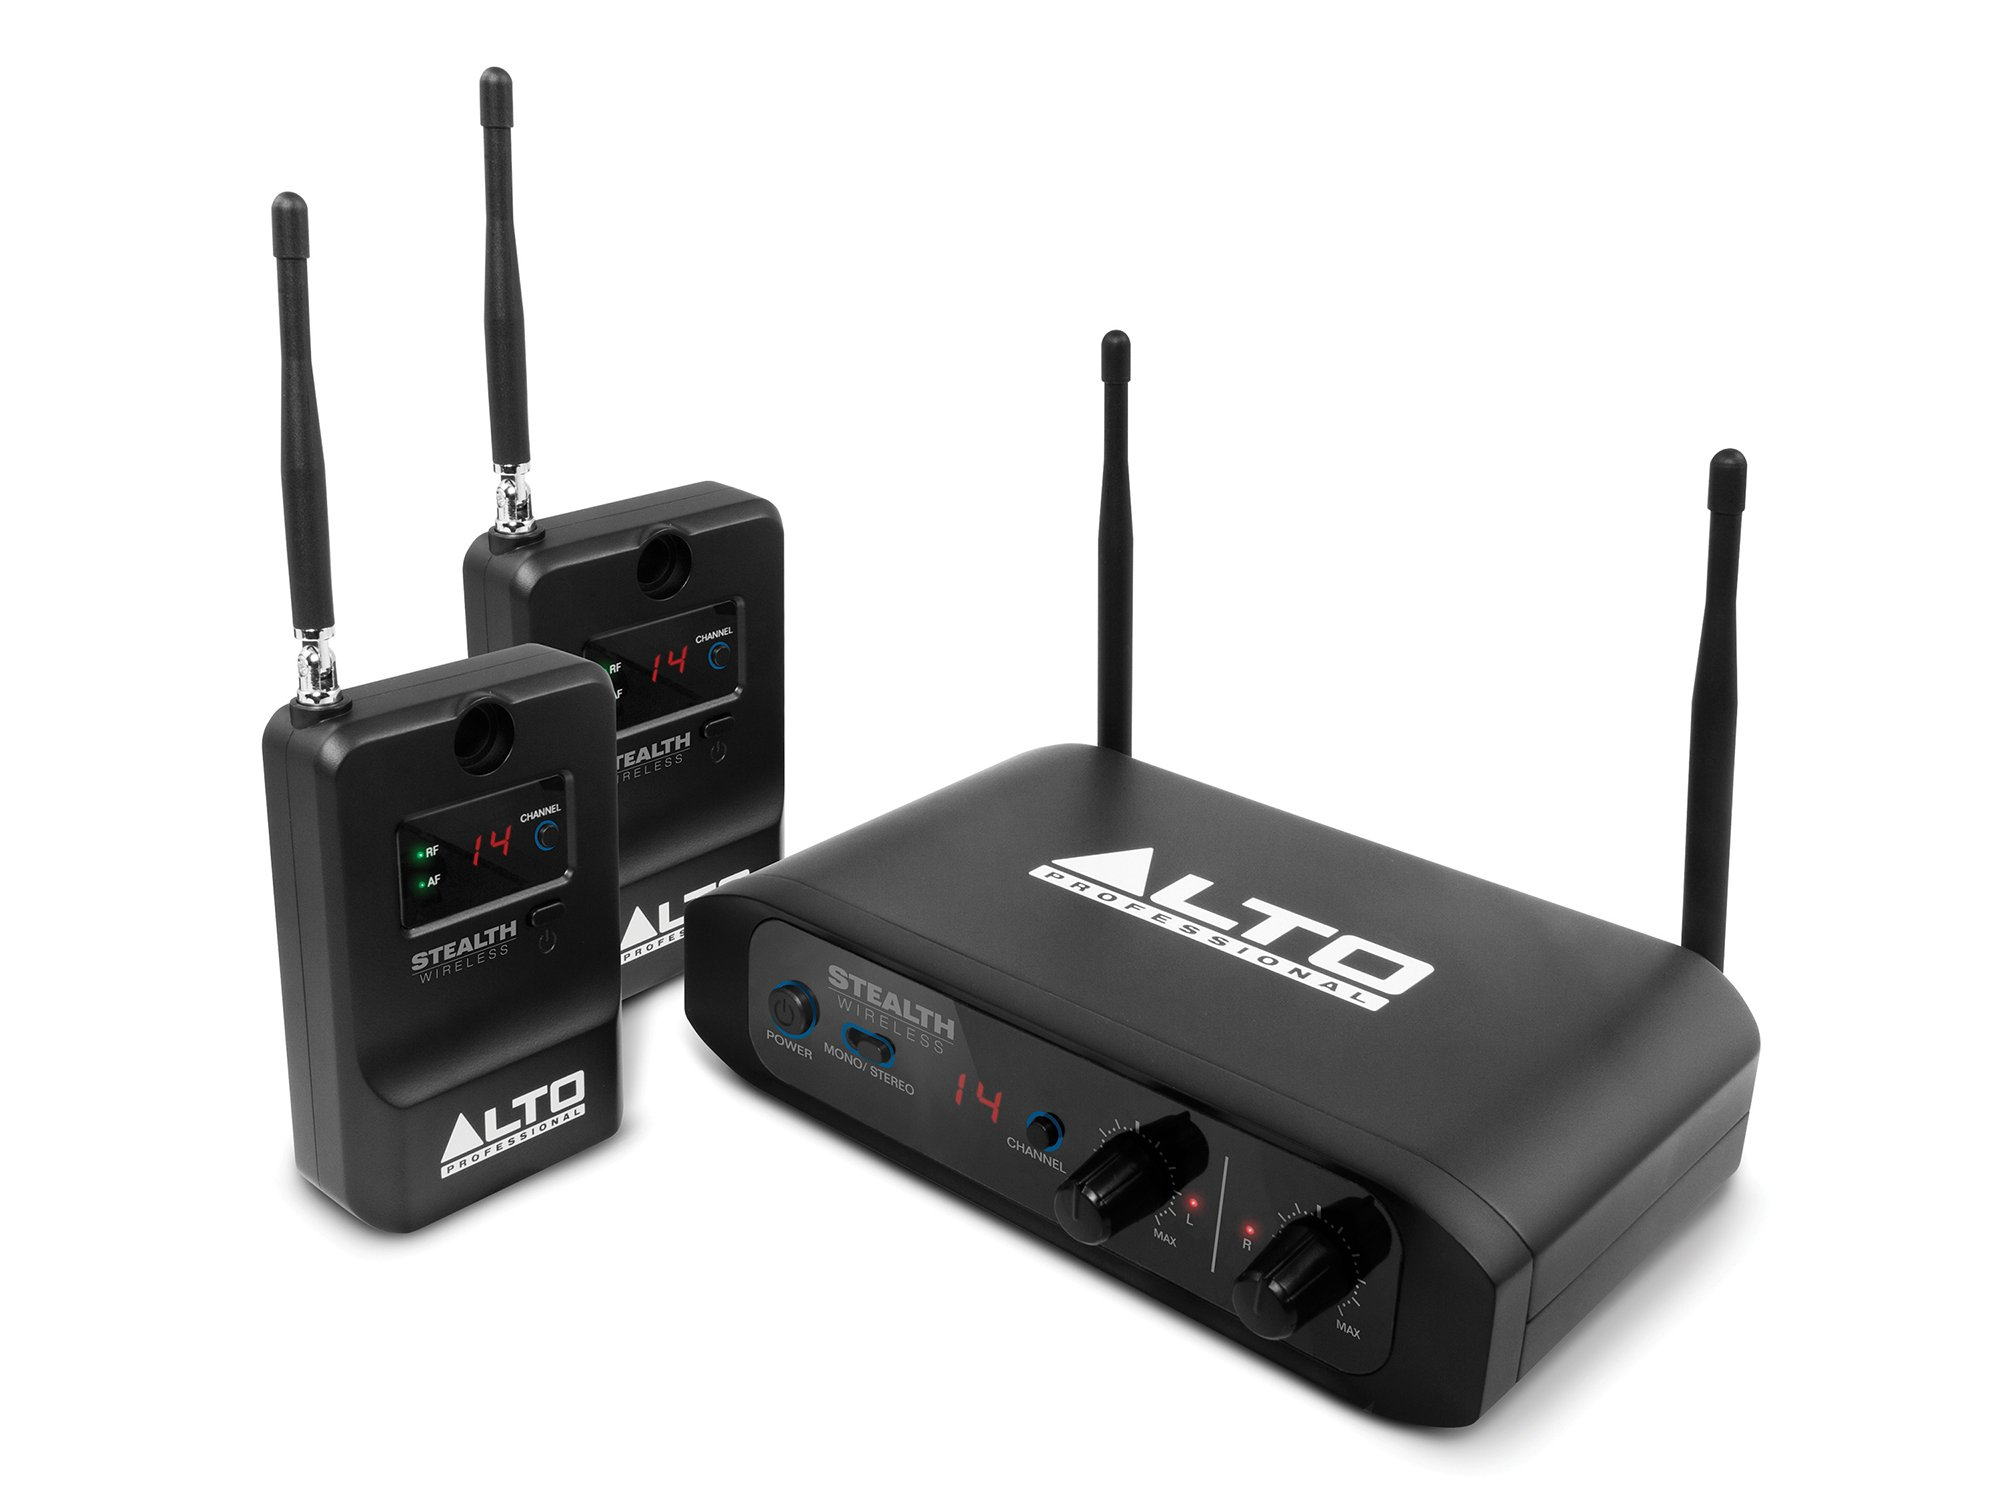 Alto Professional Stealth Wireless | Stereo Wireless System for Active Loudspeakers (Transmitter + 2 Receivers)